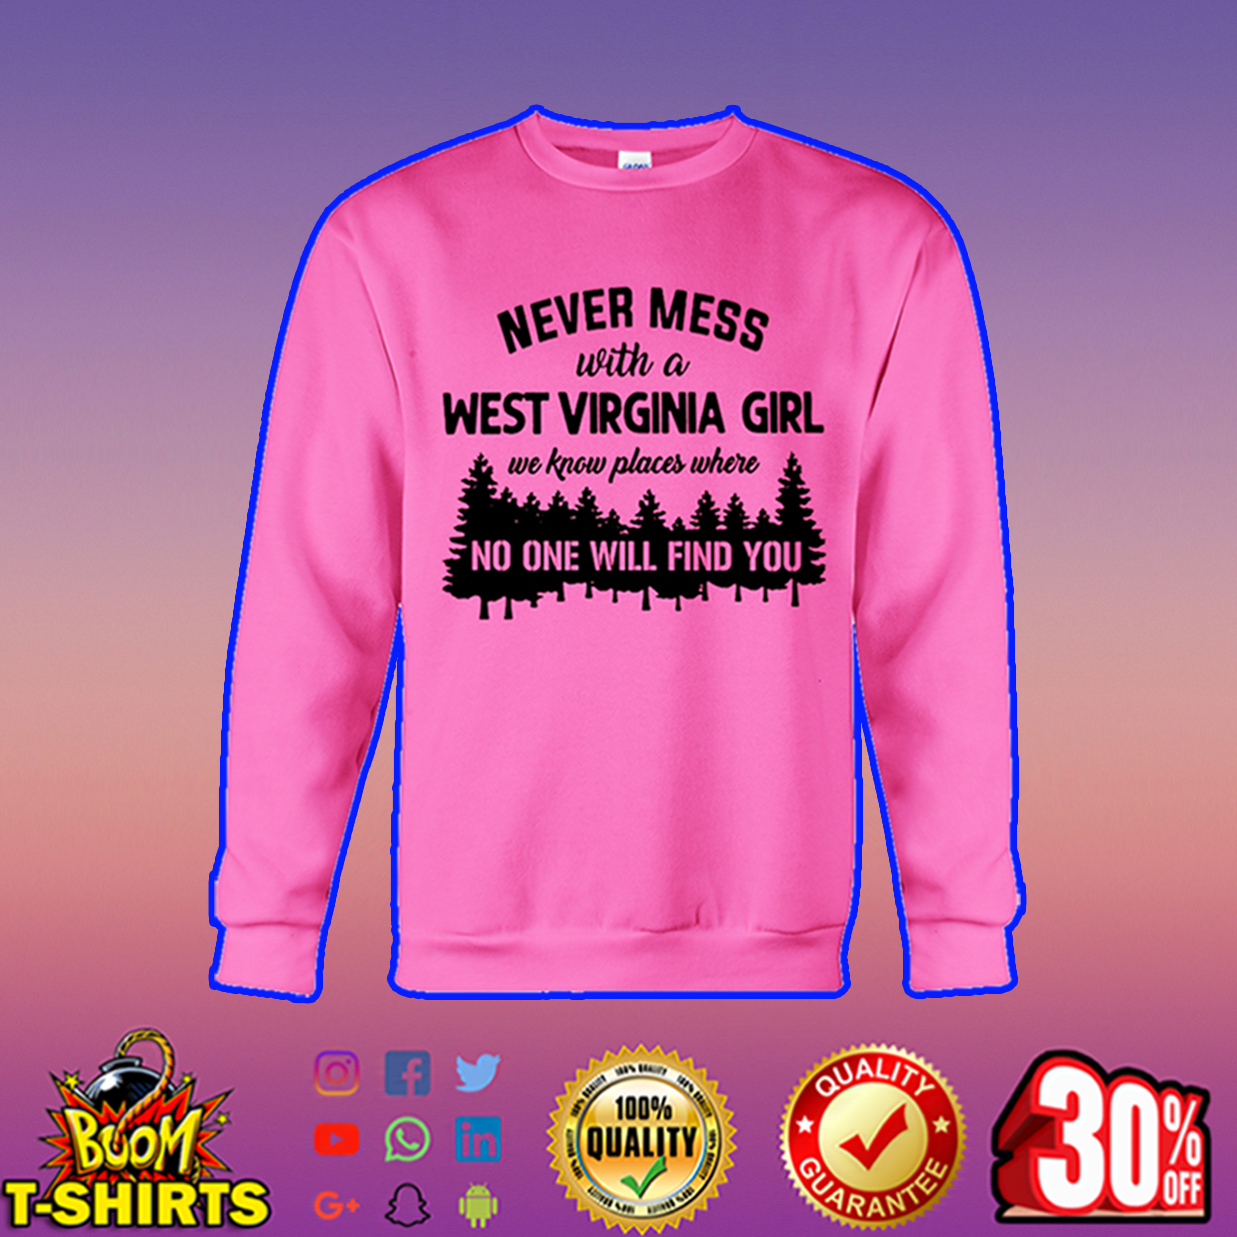 Never mess with a West Virginia girl sweatshirt